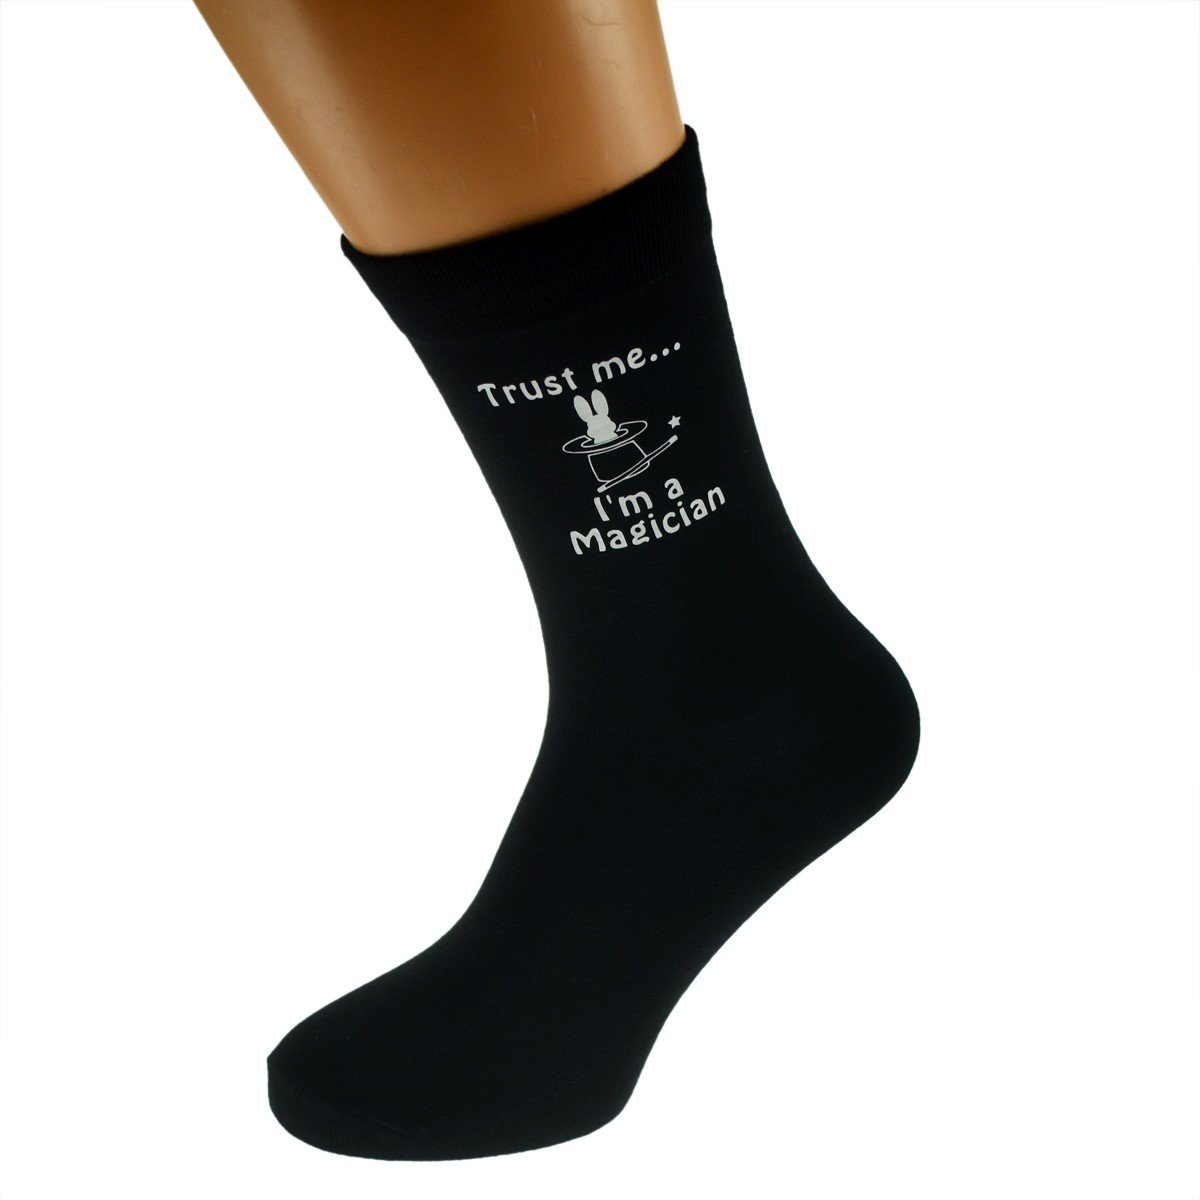 Trust me Im a Magician /& Hat with Rabbit Image Design Mens Black Cotton Rich Socks